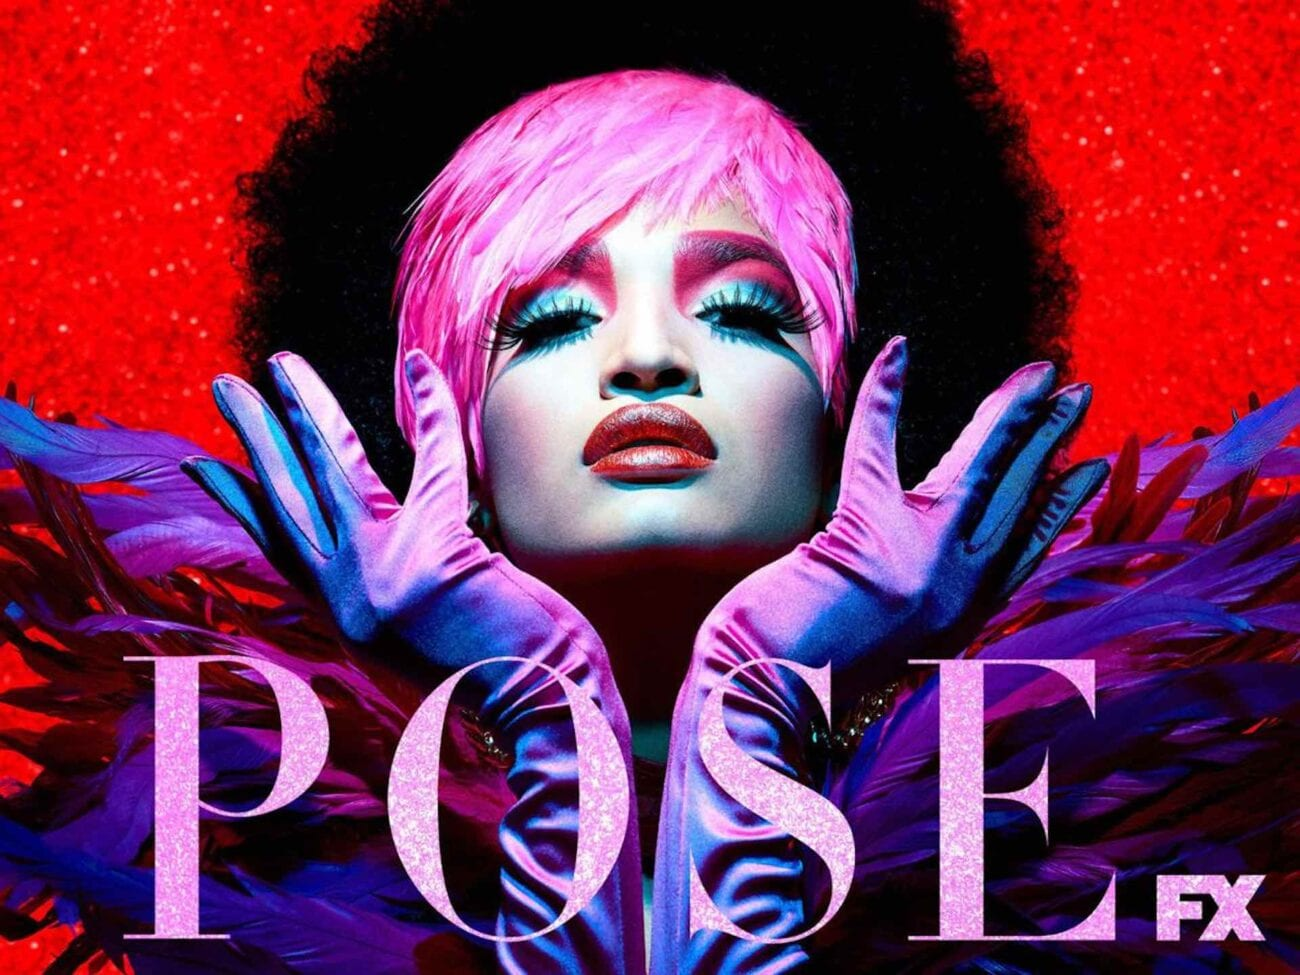 'Pose' on FX is breaking ground in Hollywood and media in general; with a large cast of transgender actors and the first trans woman of color TV director.